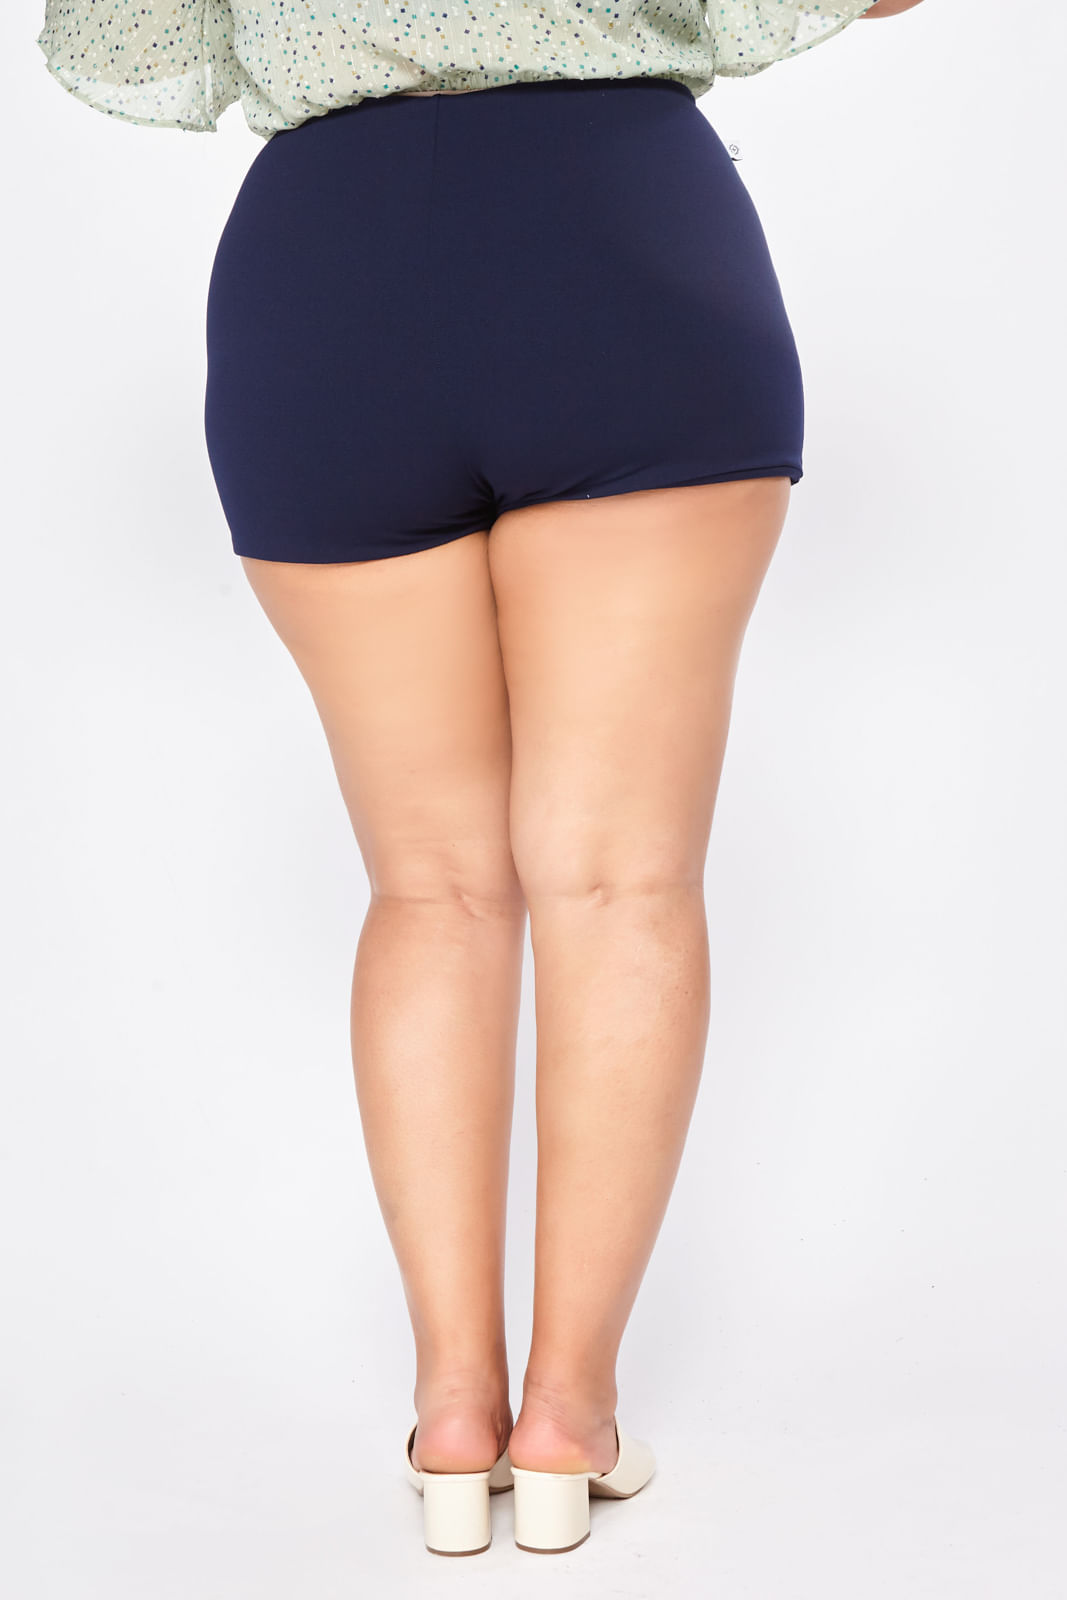 KPS007B-HP-_Shorts_Plus_Size_Hot_Pants_Azul_Marinho_3